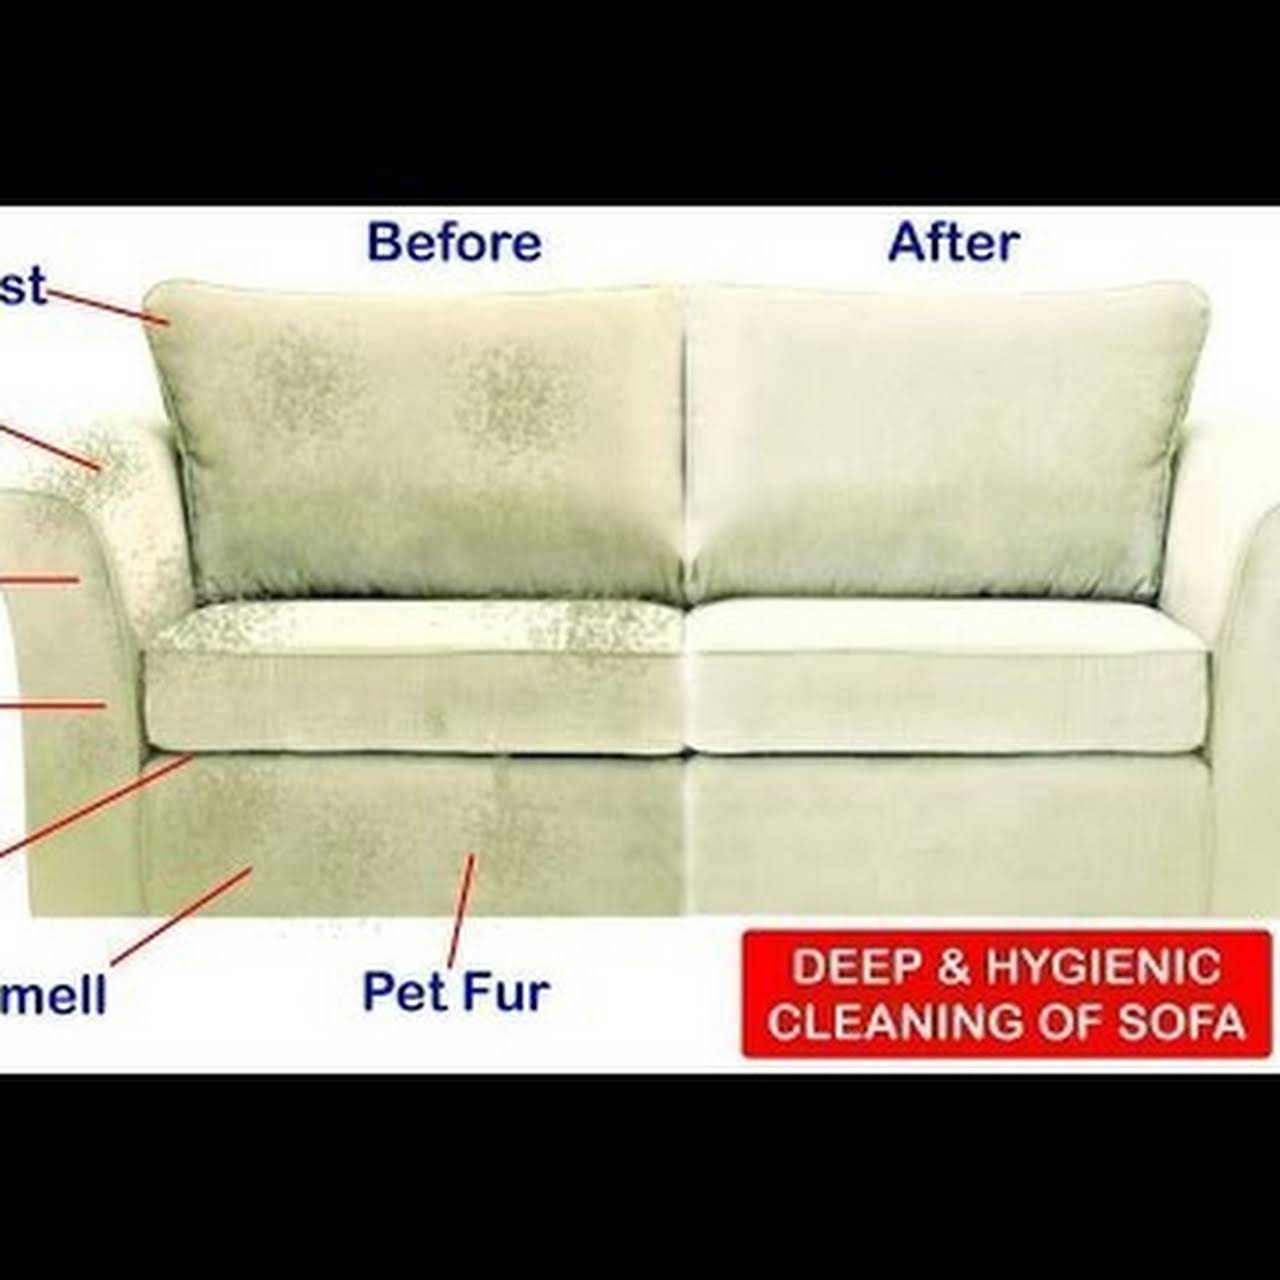 a1 sofa cleaning navi mumbai maharashtra bar seating behind z s enterprises cleaner repair furniture polish service